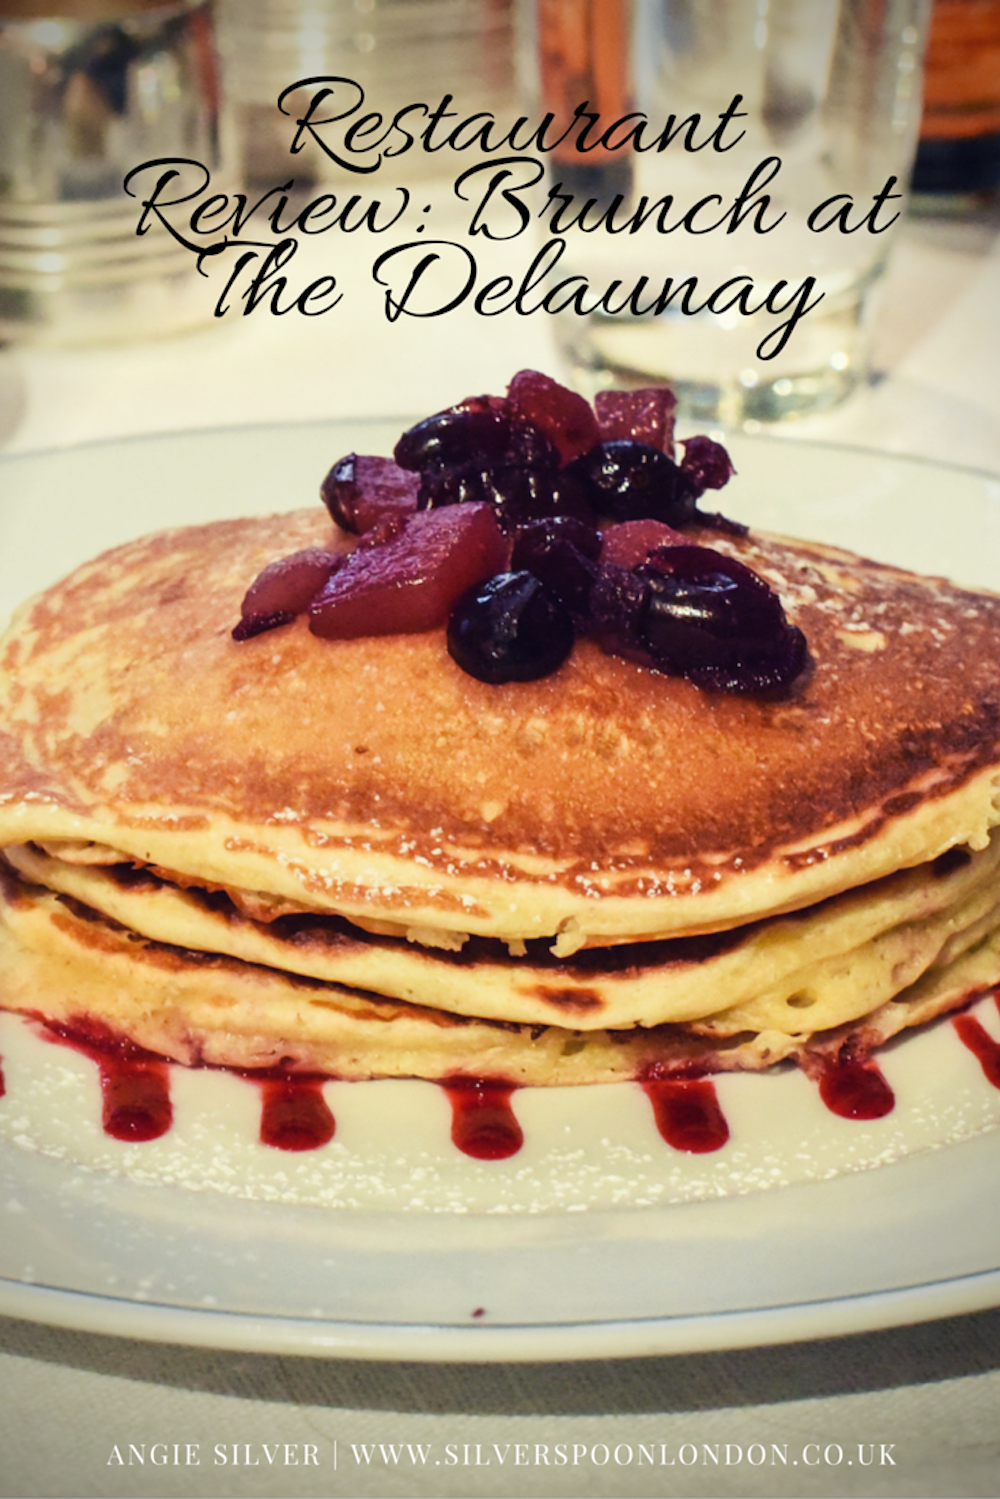 Brunch at The Delaunay